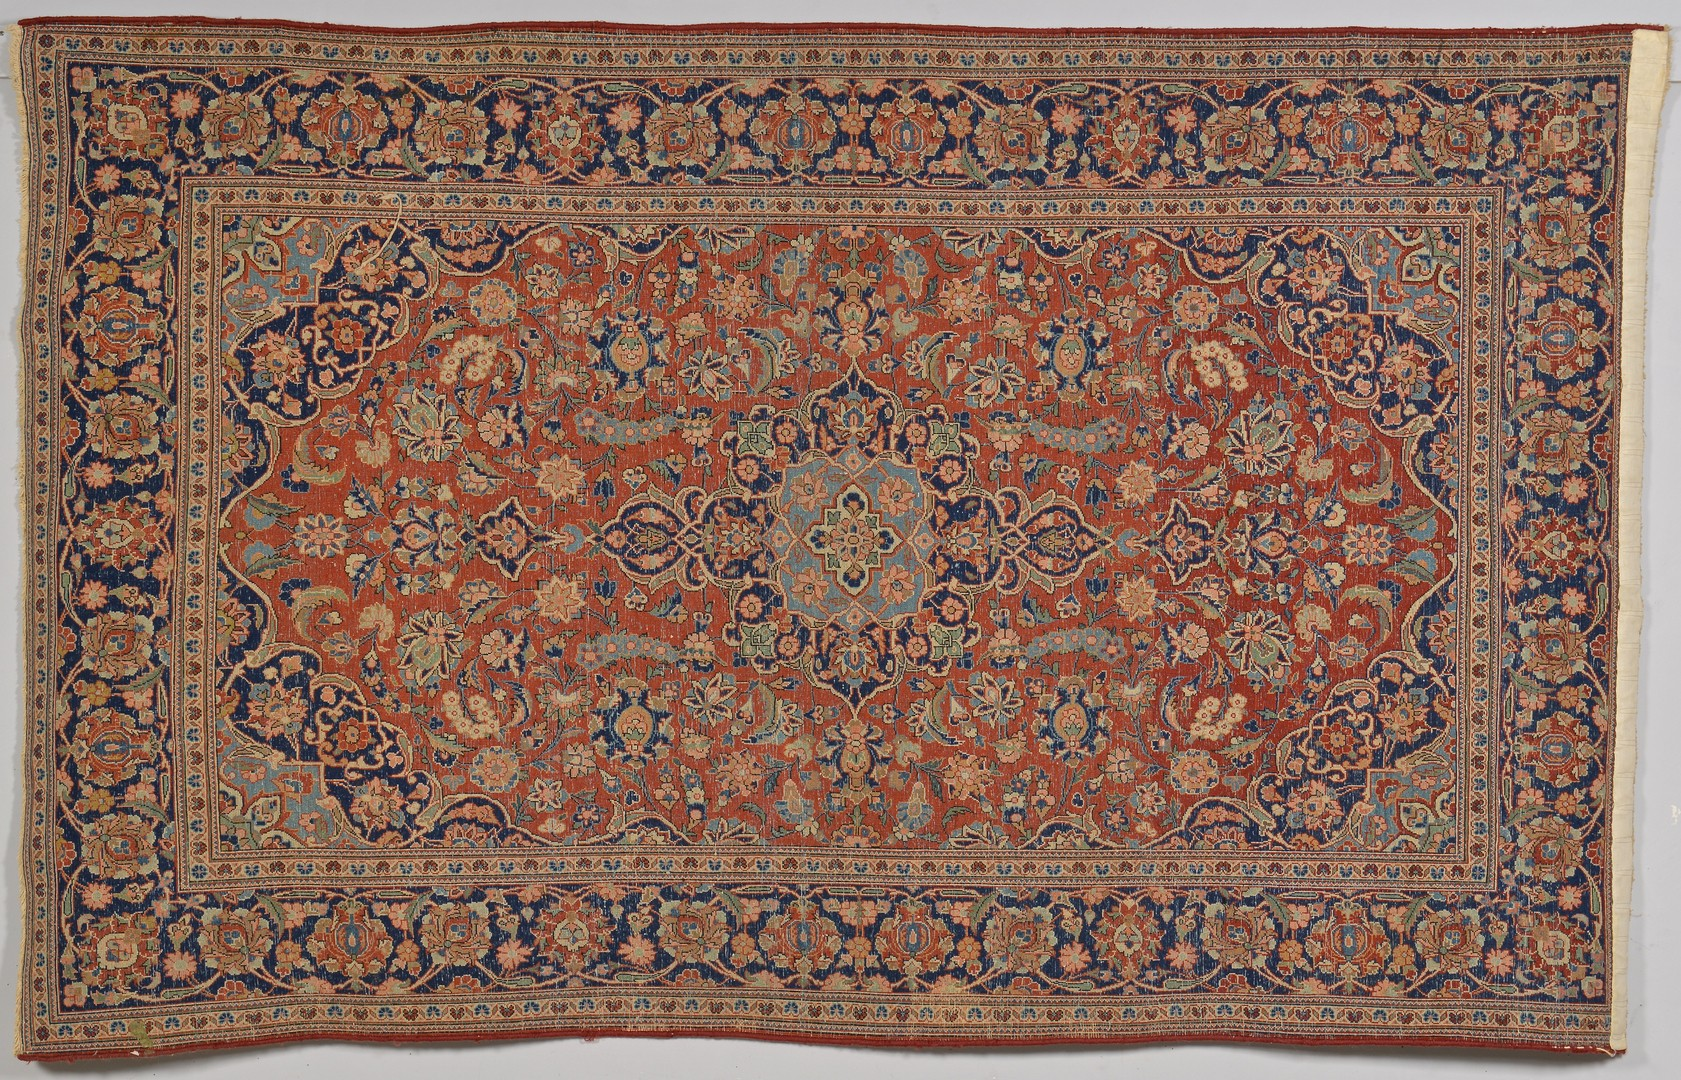 Lot 250 Persian Kashan Area Rug Early 20th C